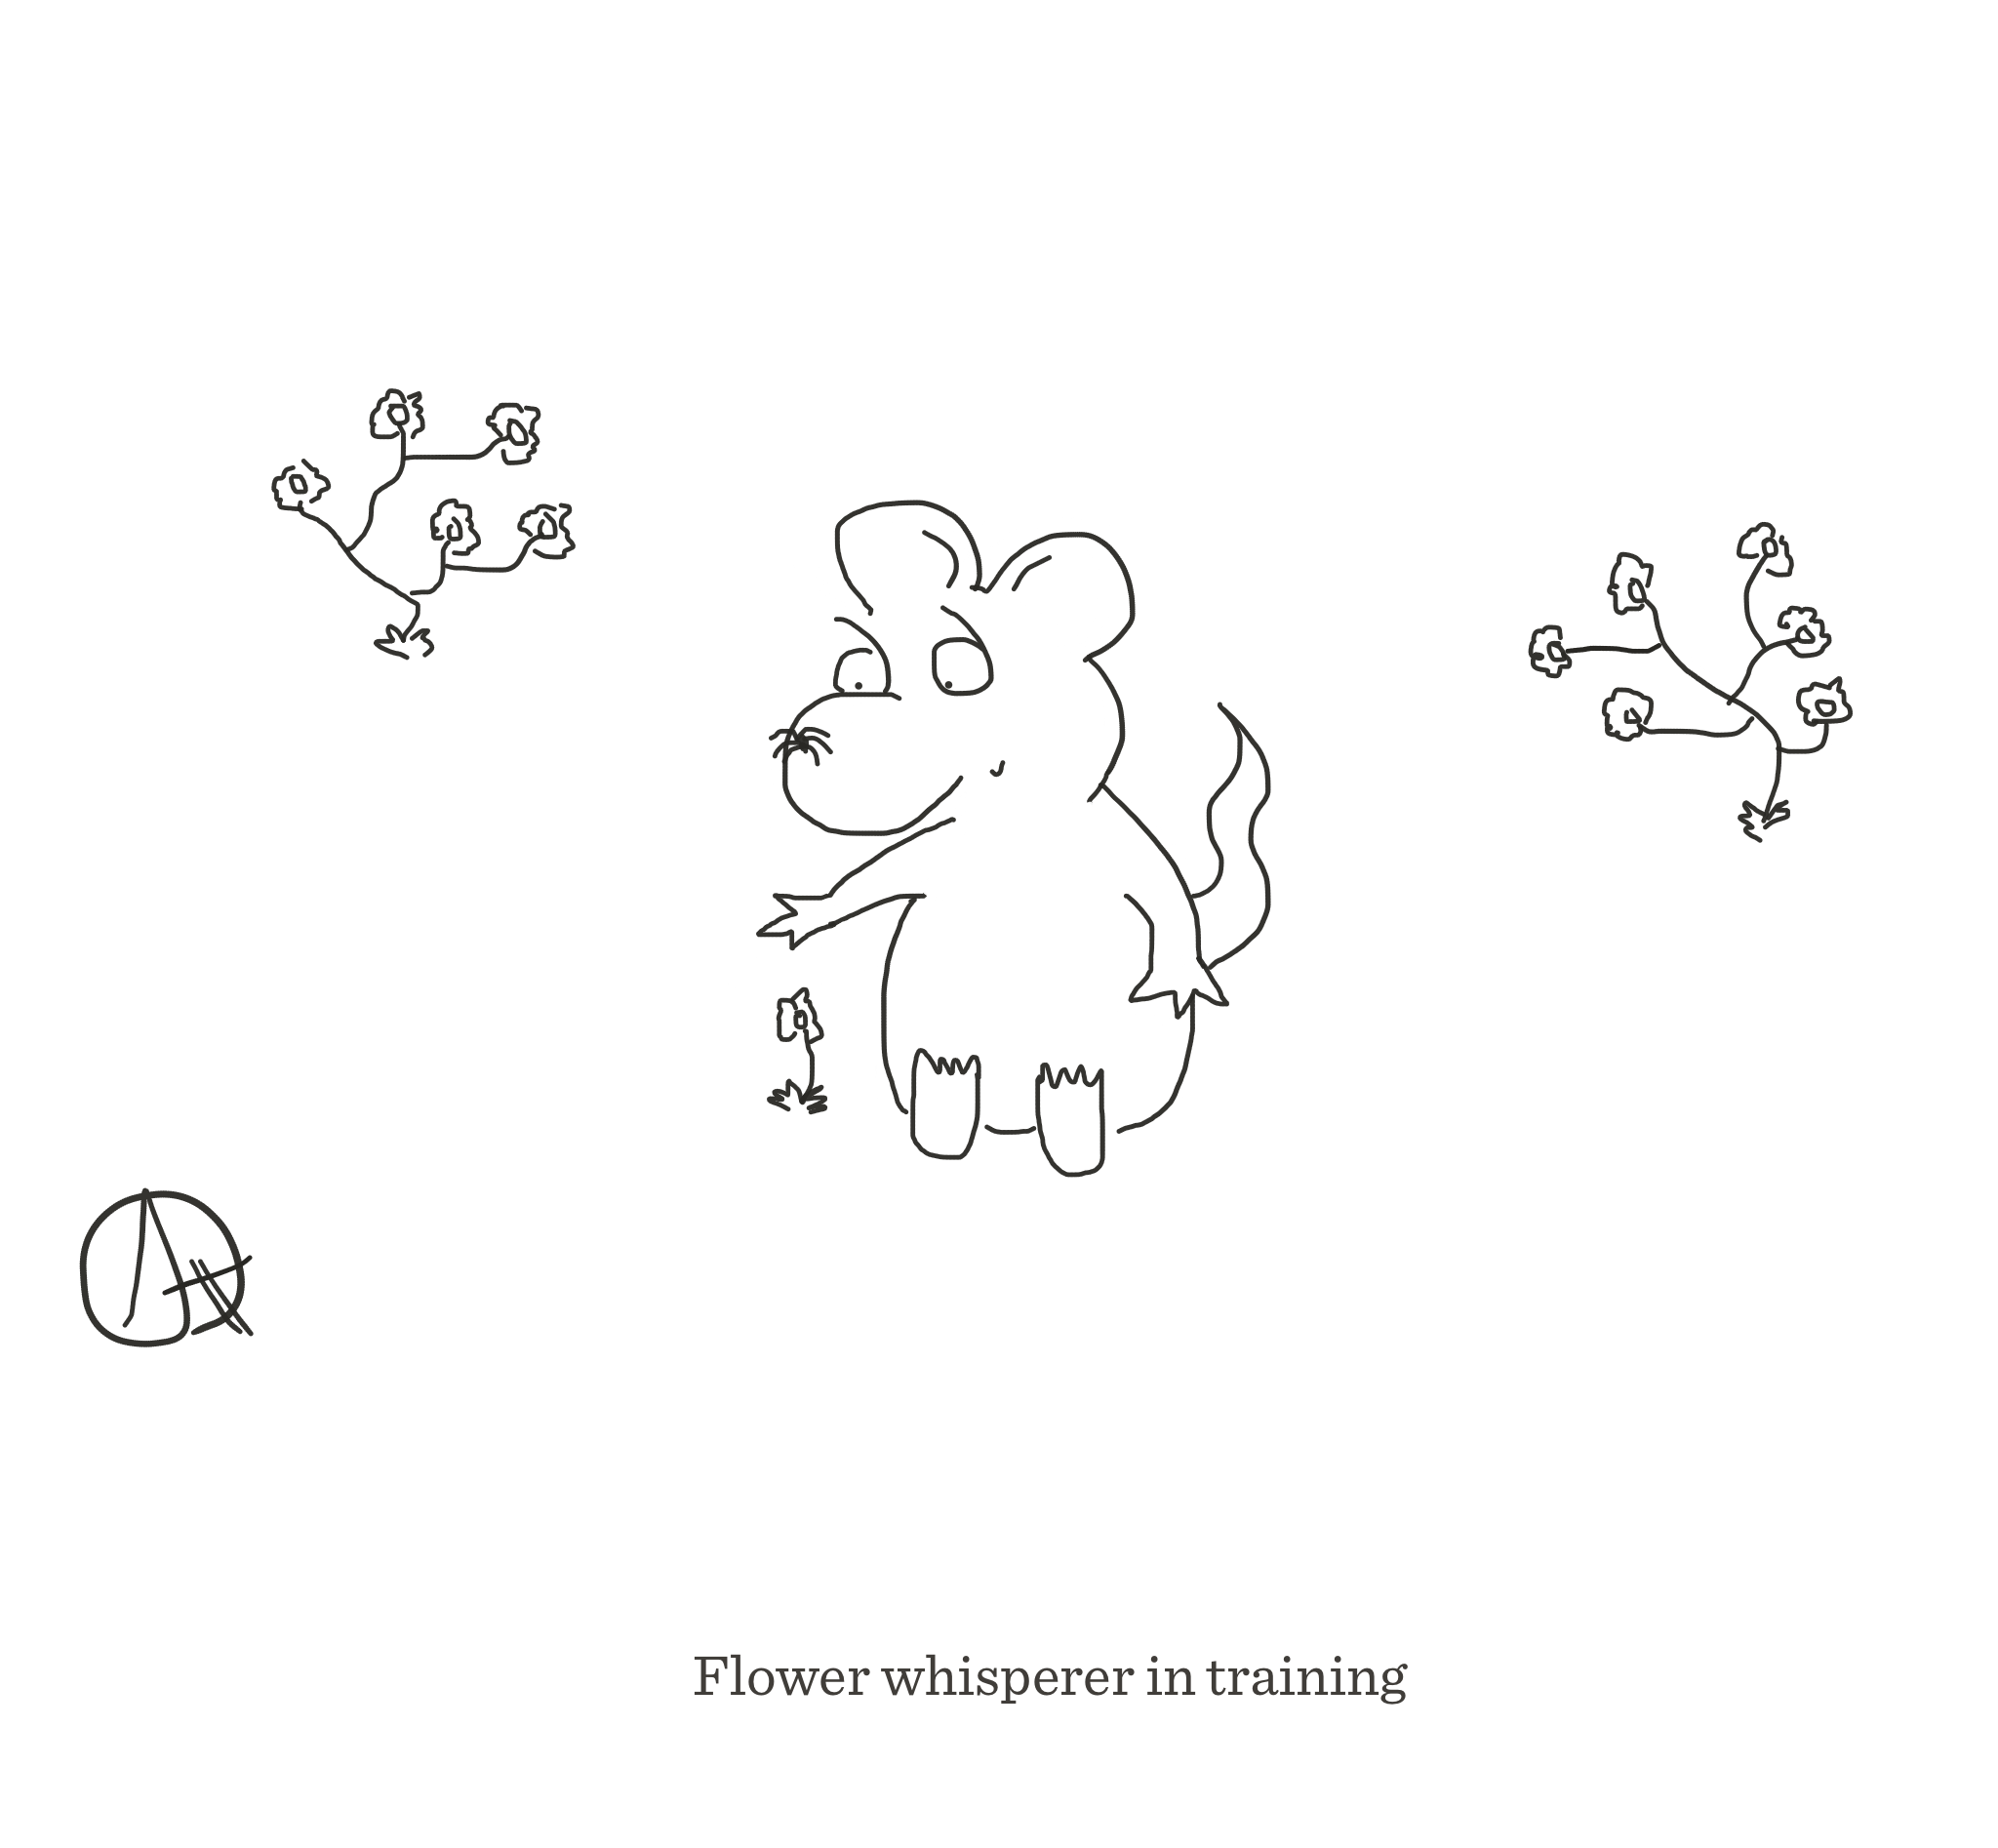 Flower whisperer in training, The Happy Rat cartoon